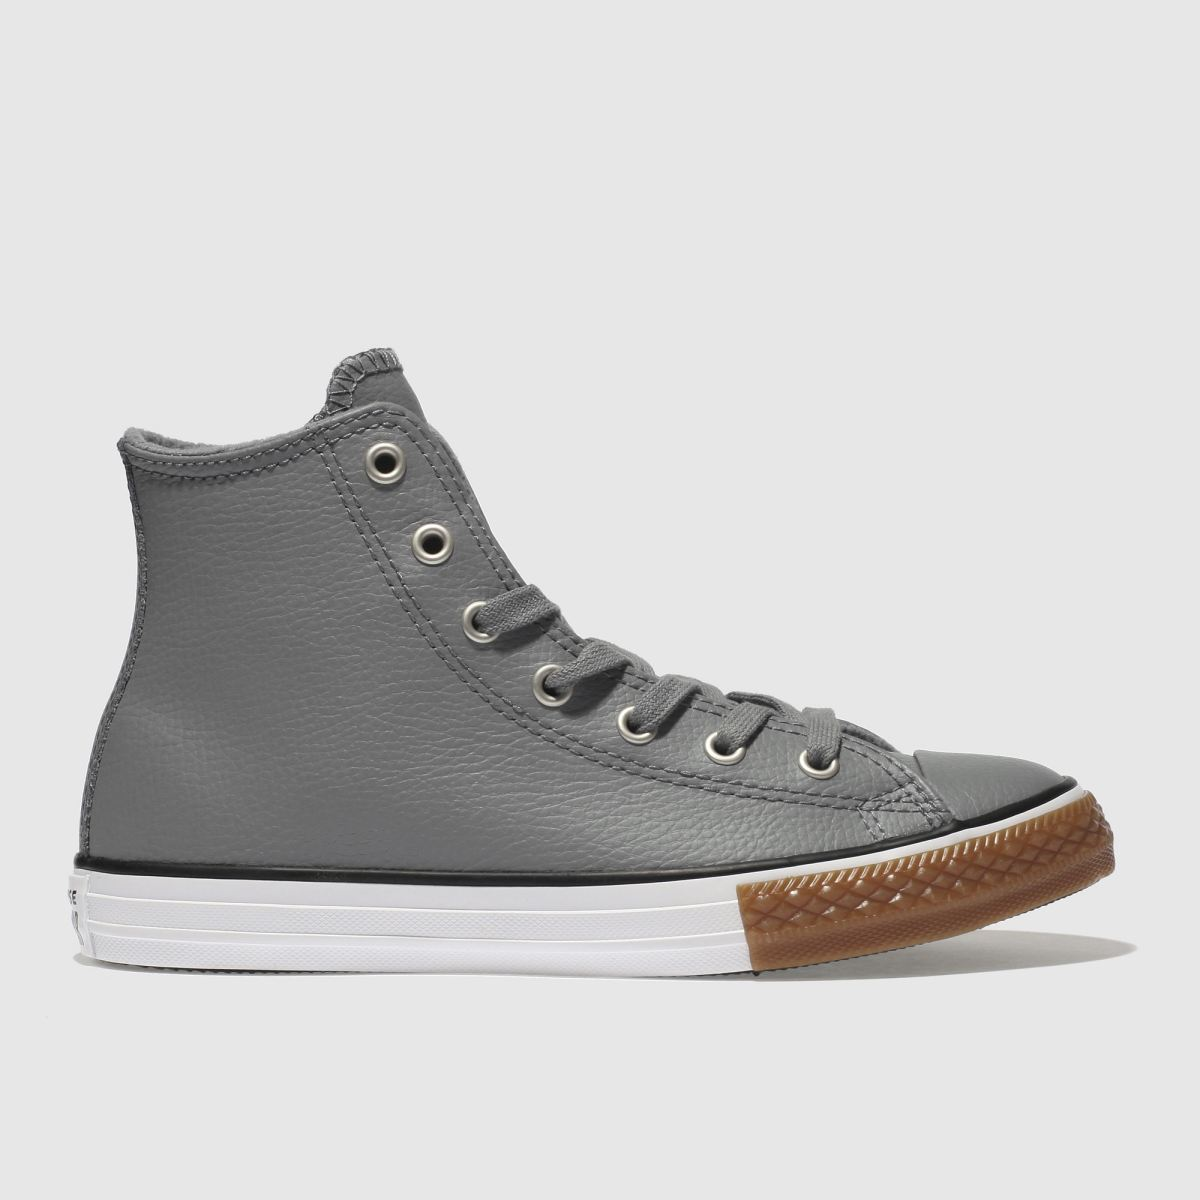 Converse Grey All Star Hi Leather Unisex Youth Youth